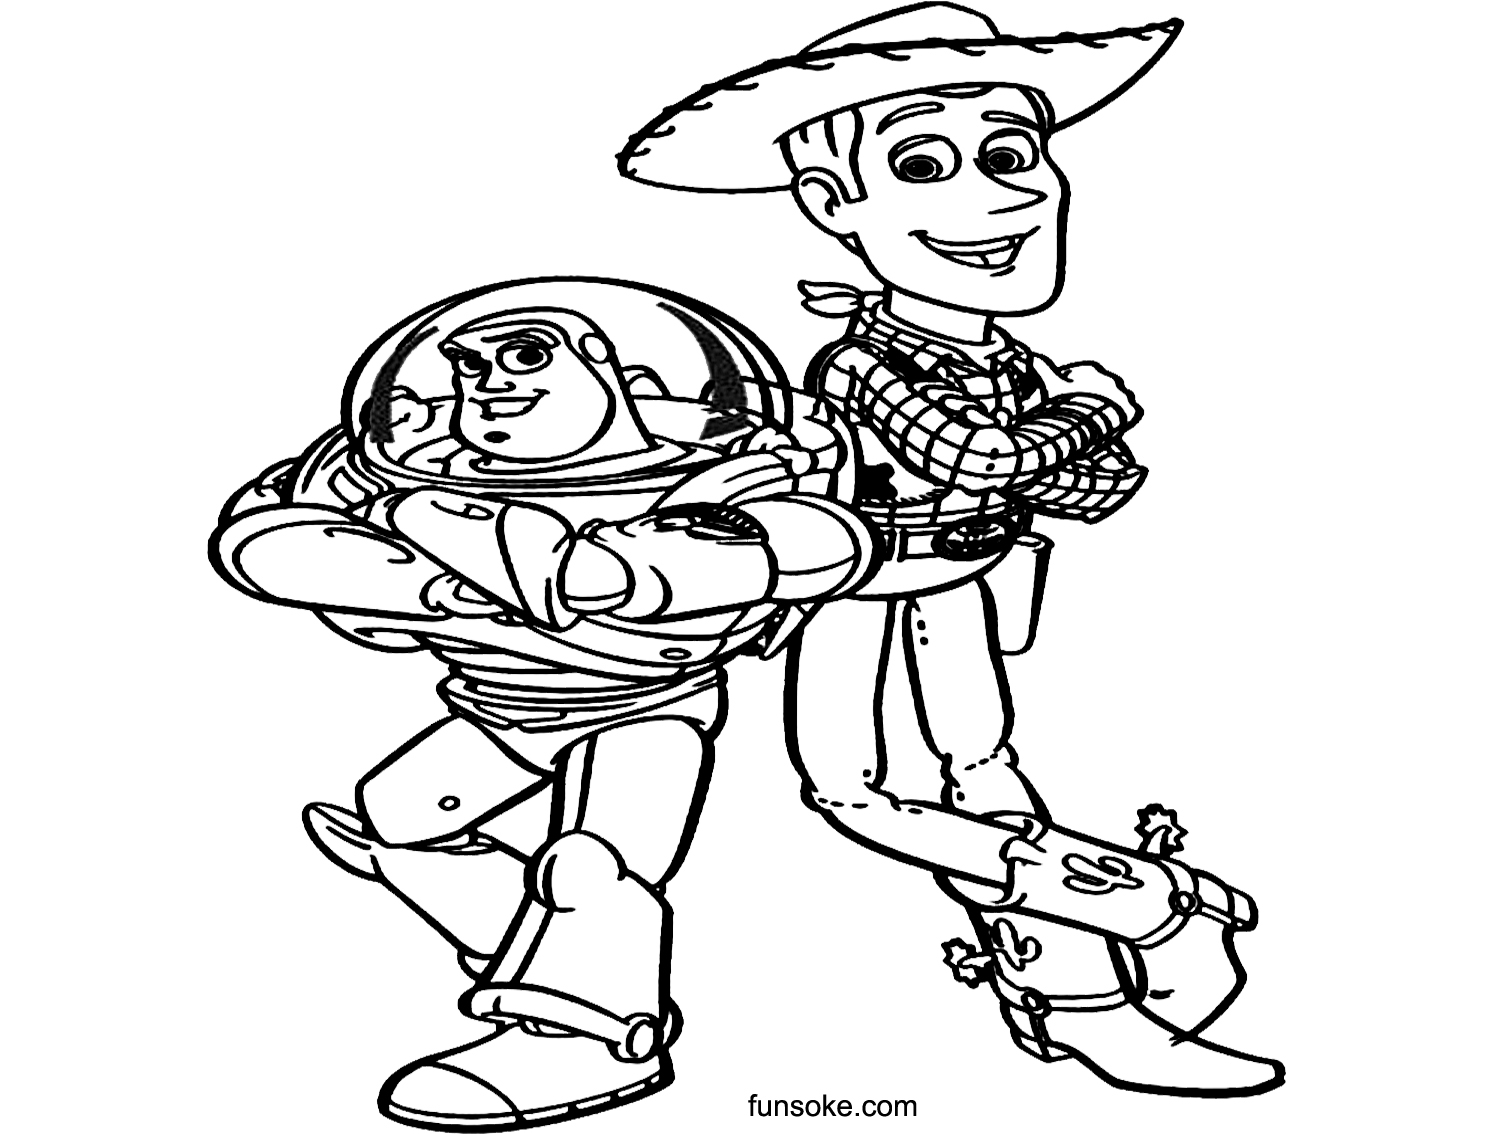 toy story coloring toy story coloring pages coloring pages for kids toy coloring story